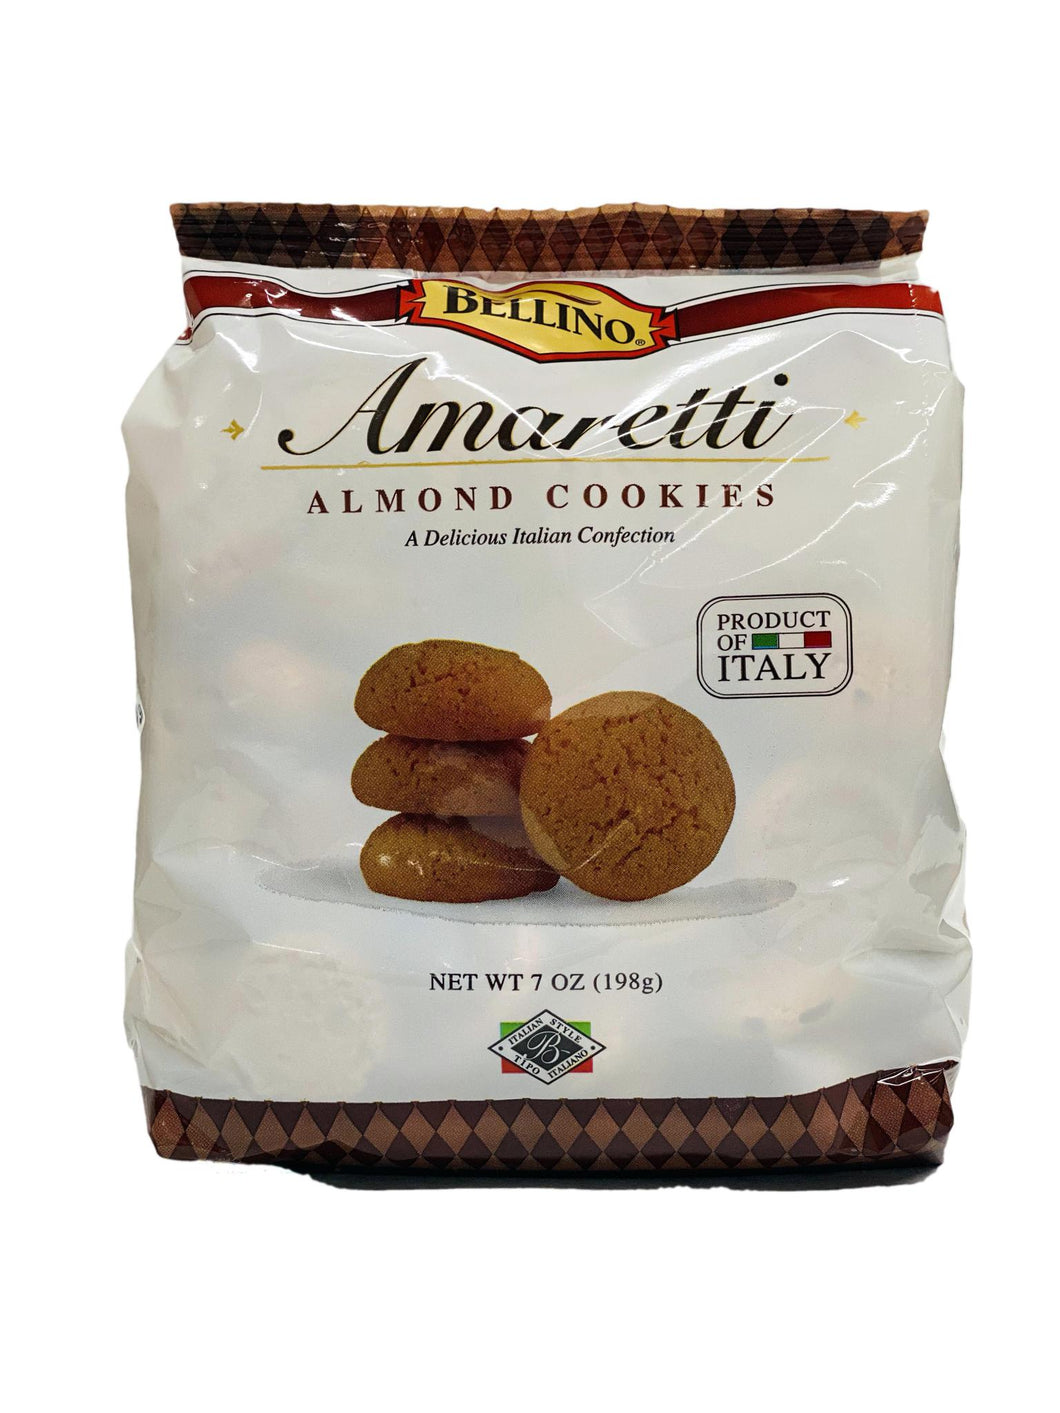 Bellino Amaretti Almond Cookies, 7 oz